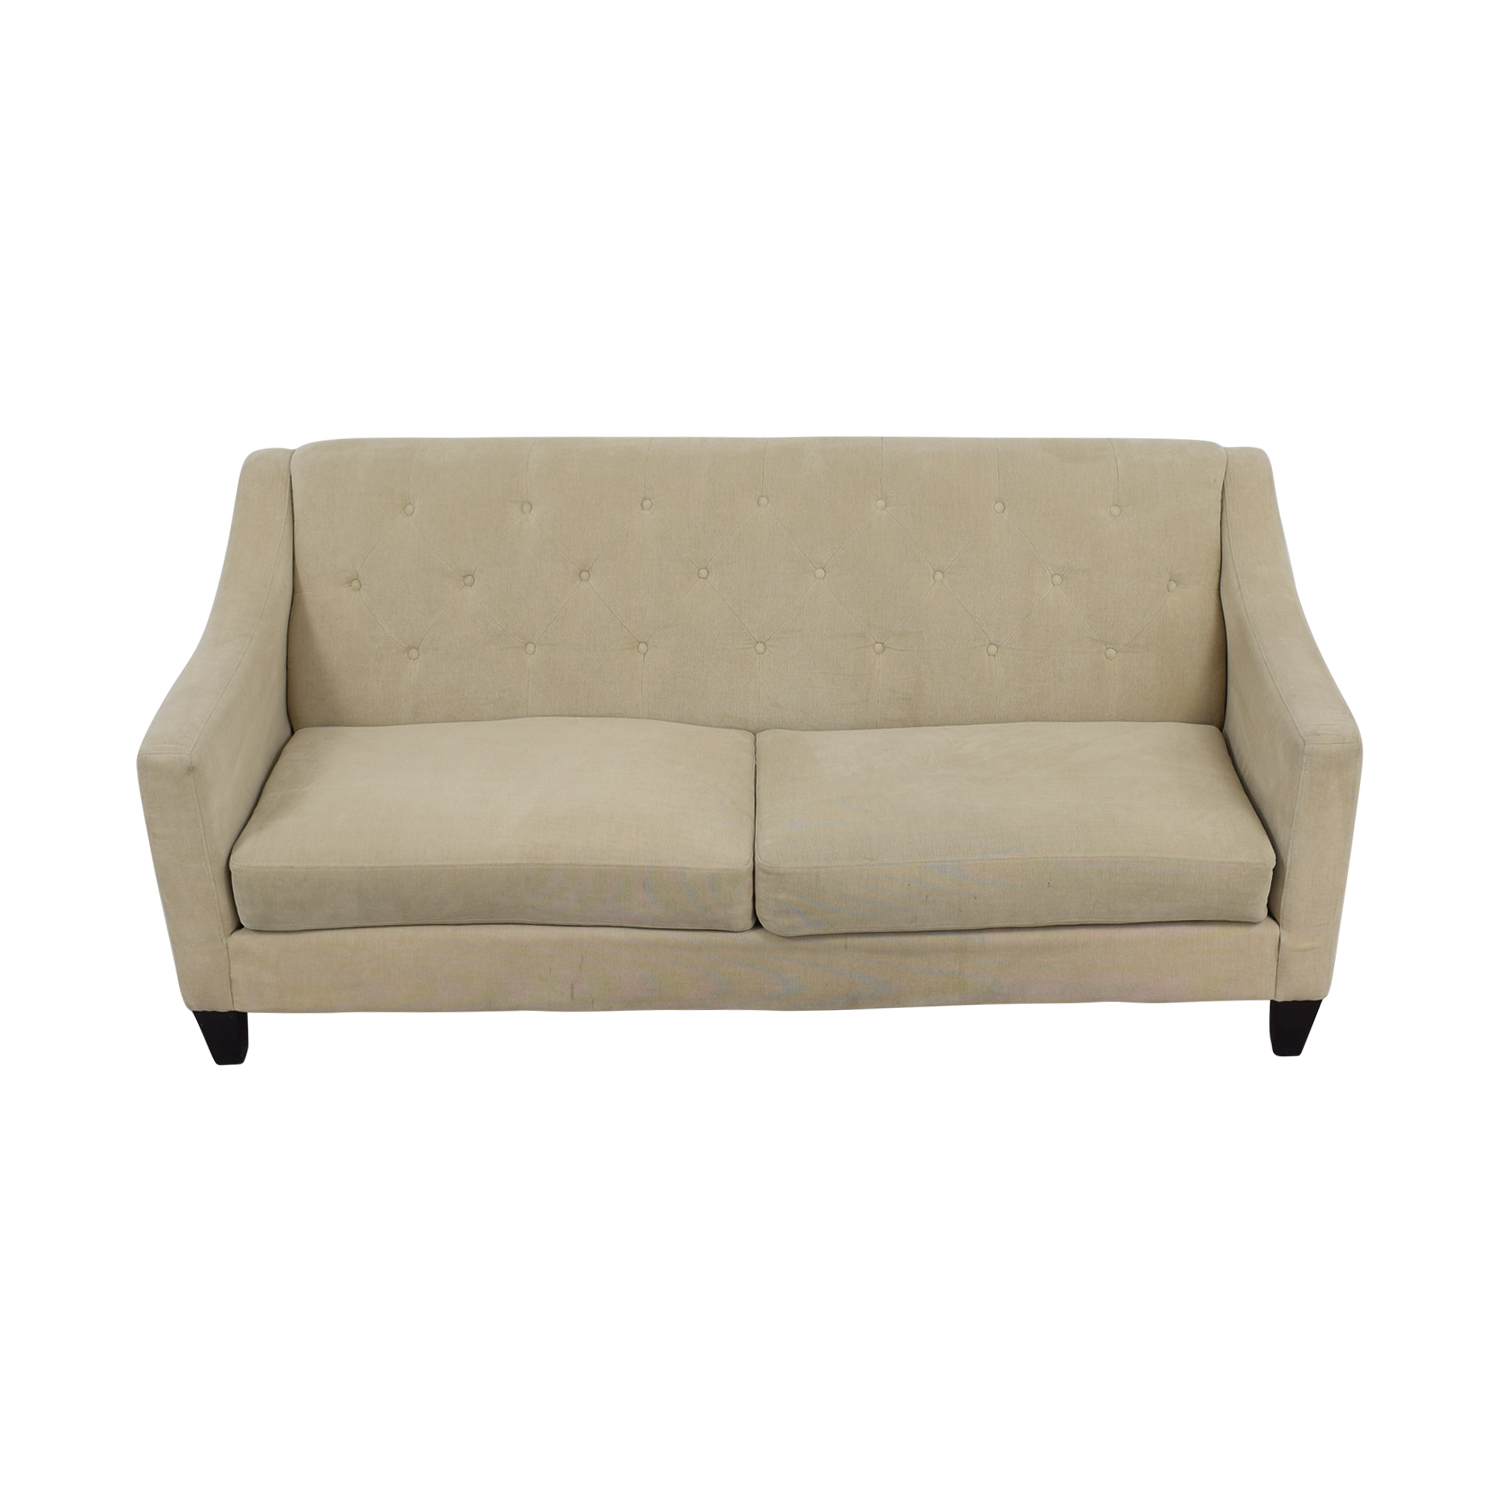 Raymour and Flanigan Raymour & Flanigan Beige Tufted Couch second hand